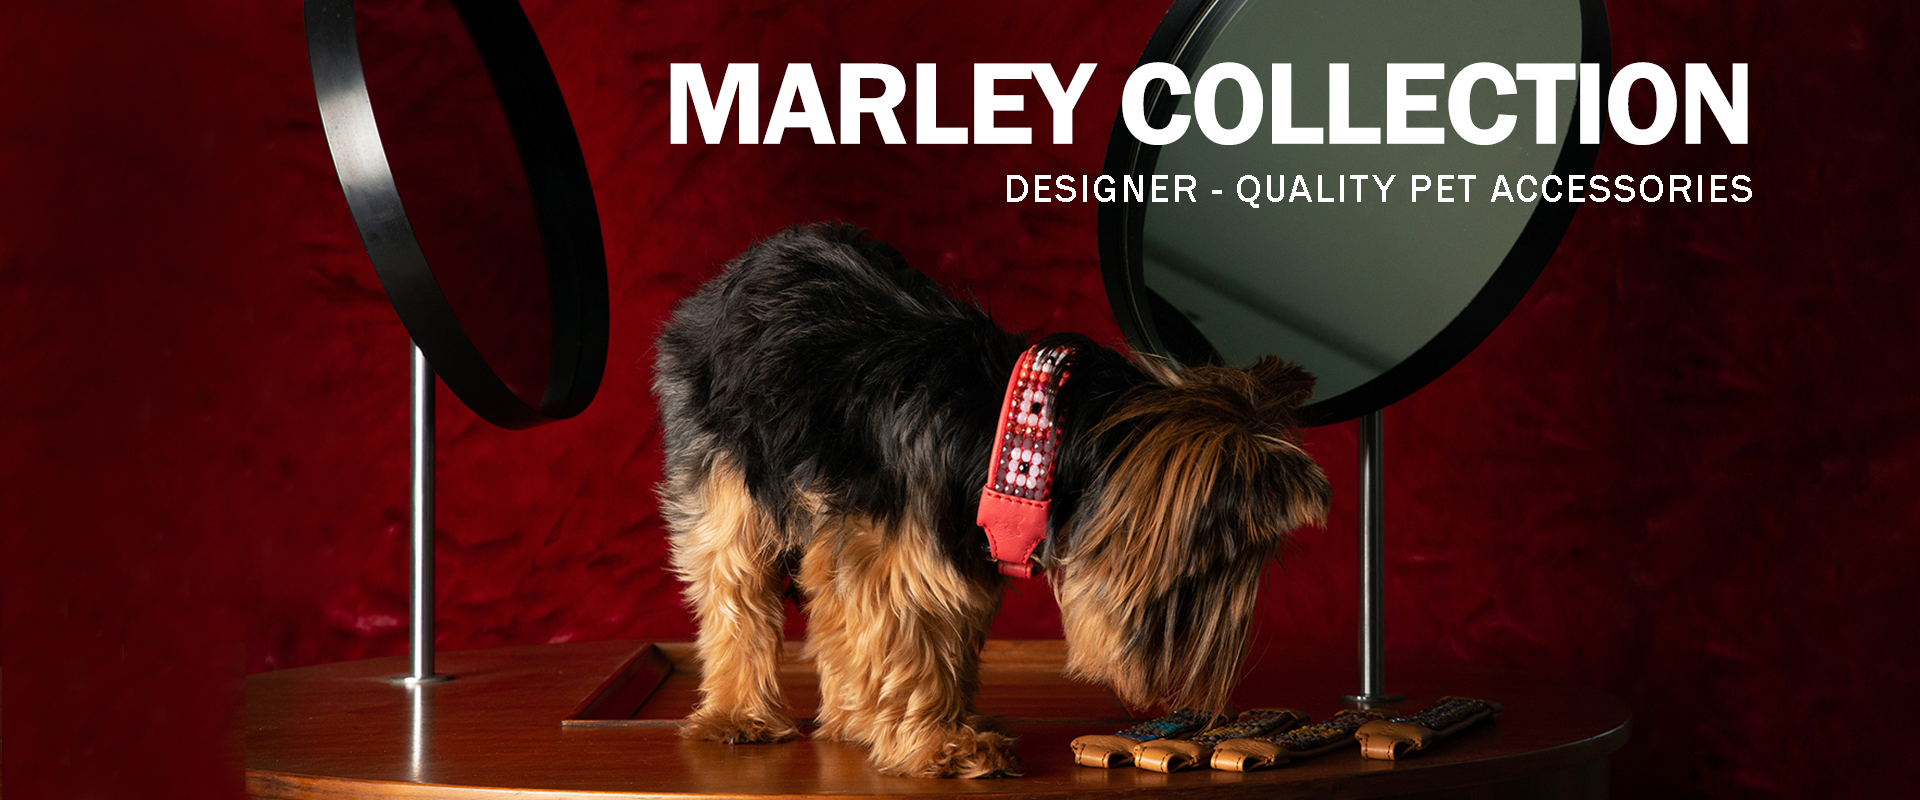 Marley Collection | Designer-quality pet accessories by zikos